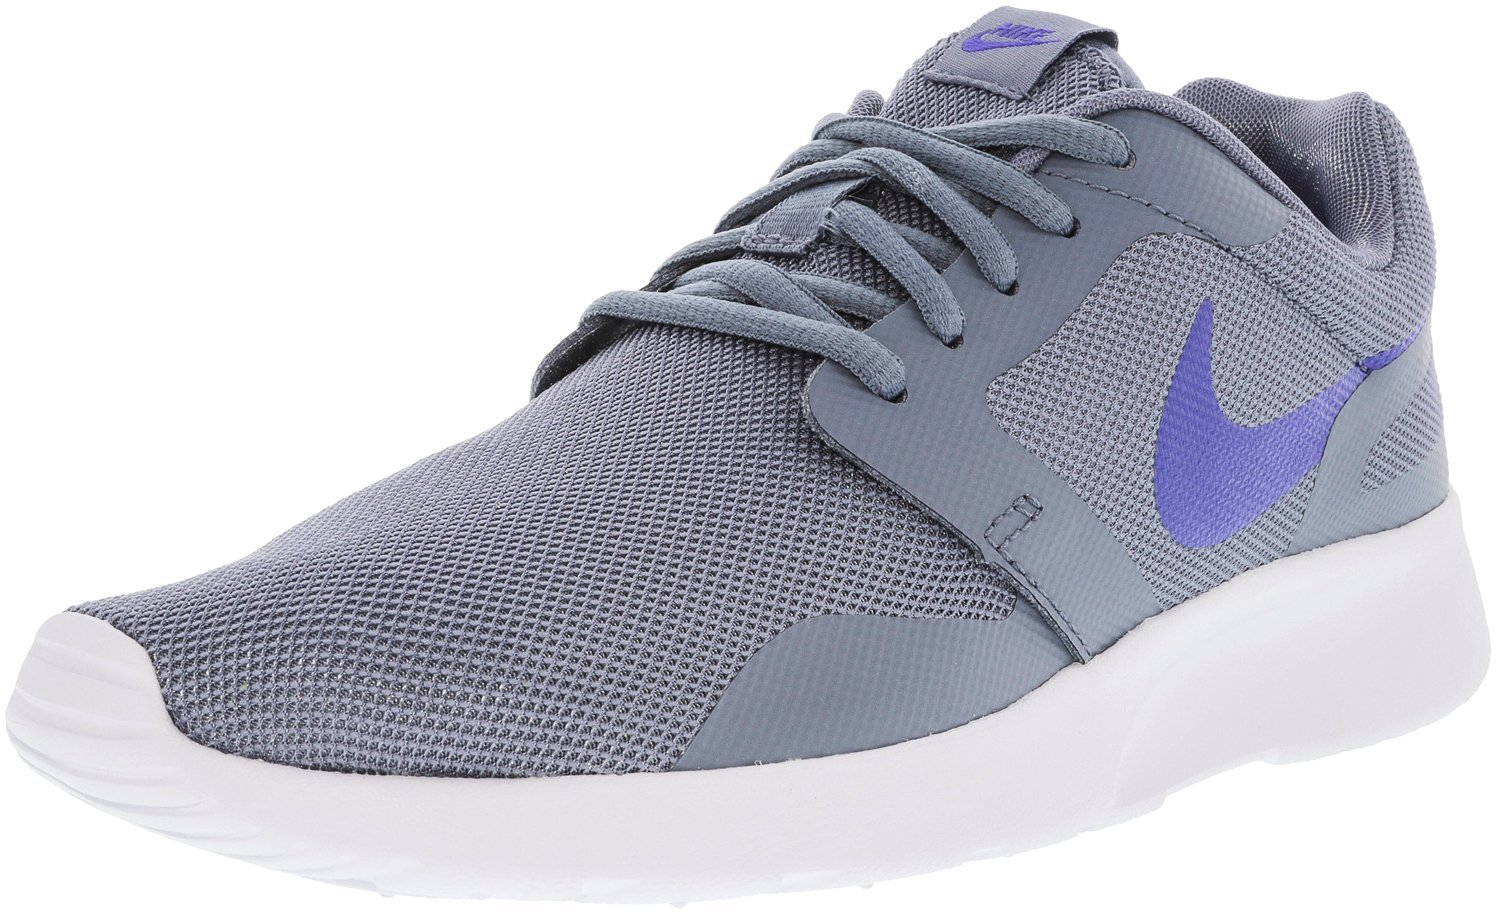 Nike Women's Kaishi Running Shoe B0796DBCFH 8 B(M) US|Dark Sky Blue / Persian Violet